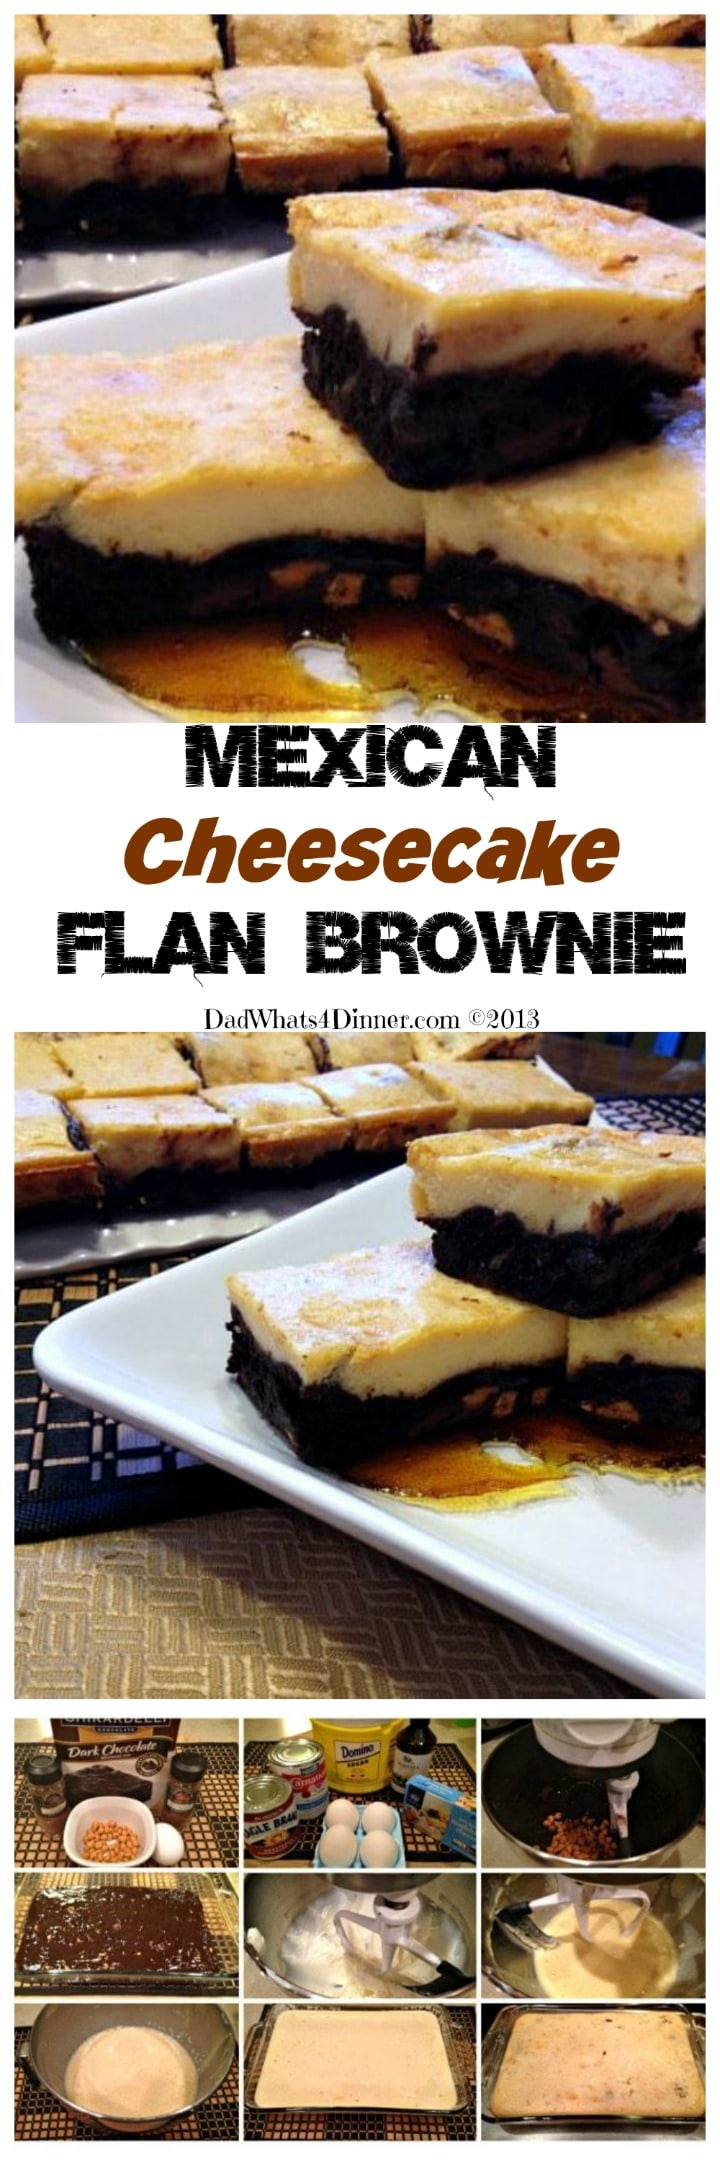 For Cinco de Mayo my Mexican Cheesecake Flan Brownie is the perfect marriage of two wonderful desserts. Luscious chocolate brownie topped with creamy flan! www.dadwhats4dinner.com